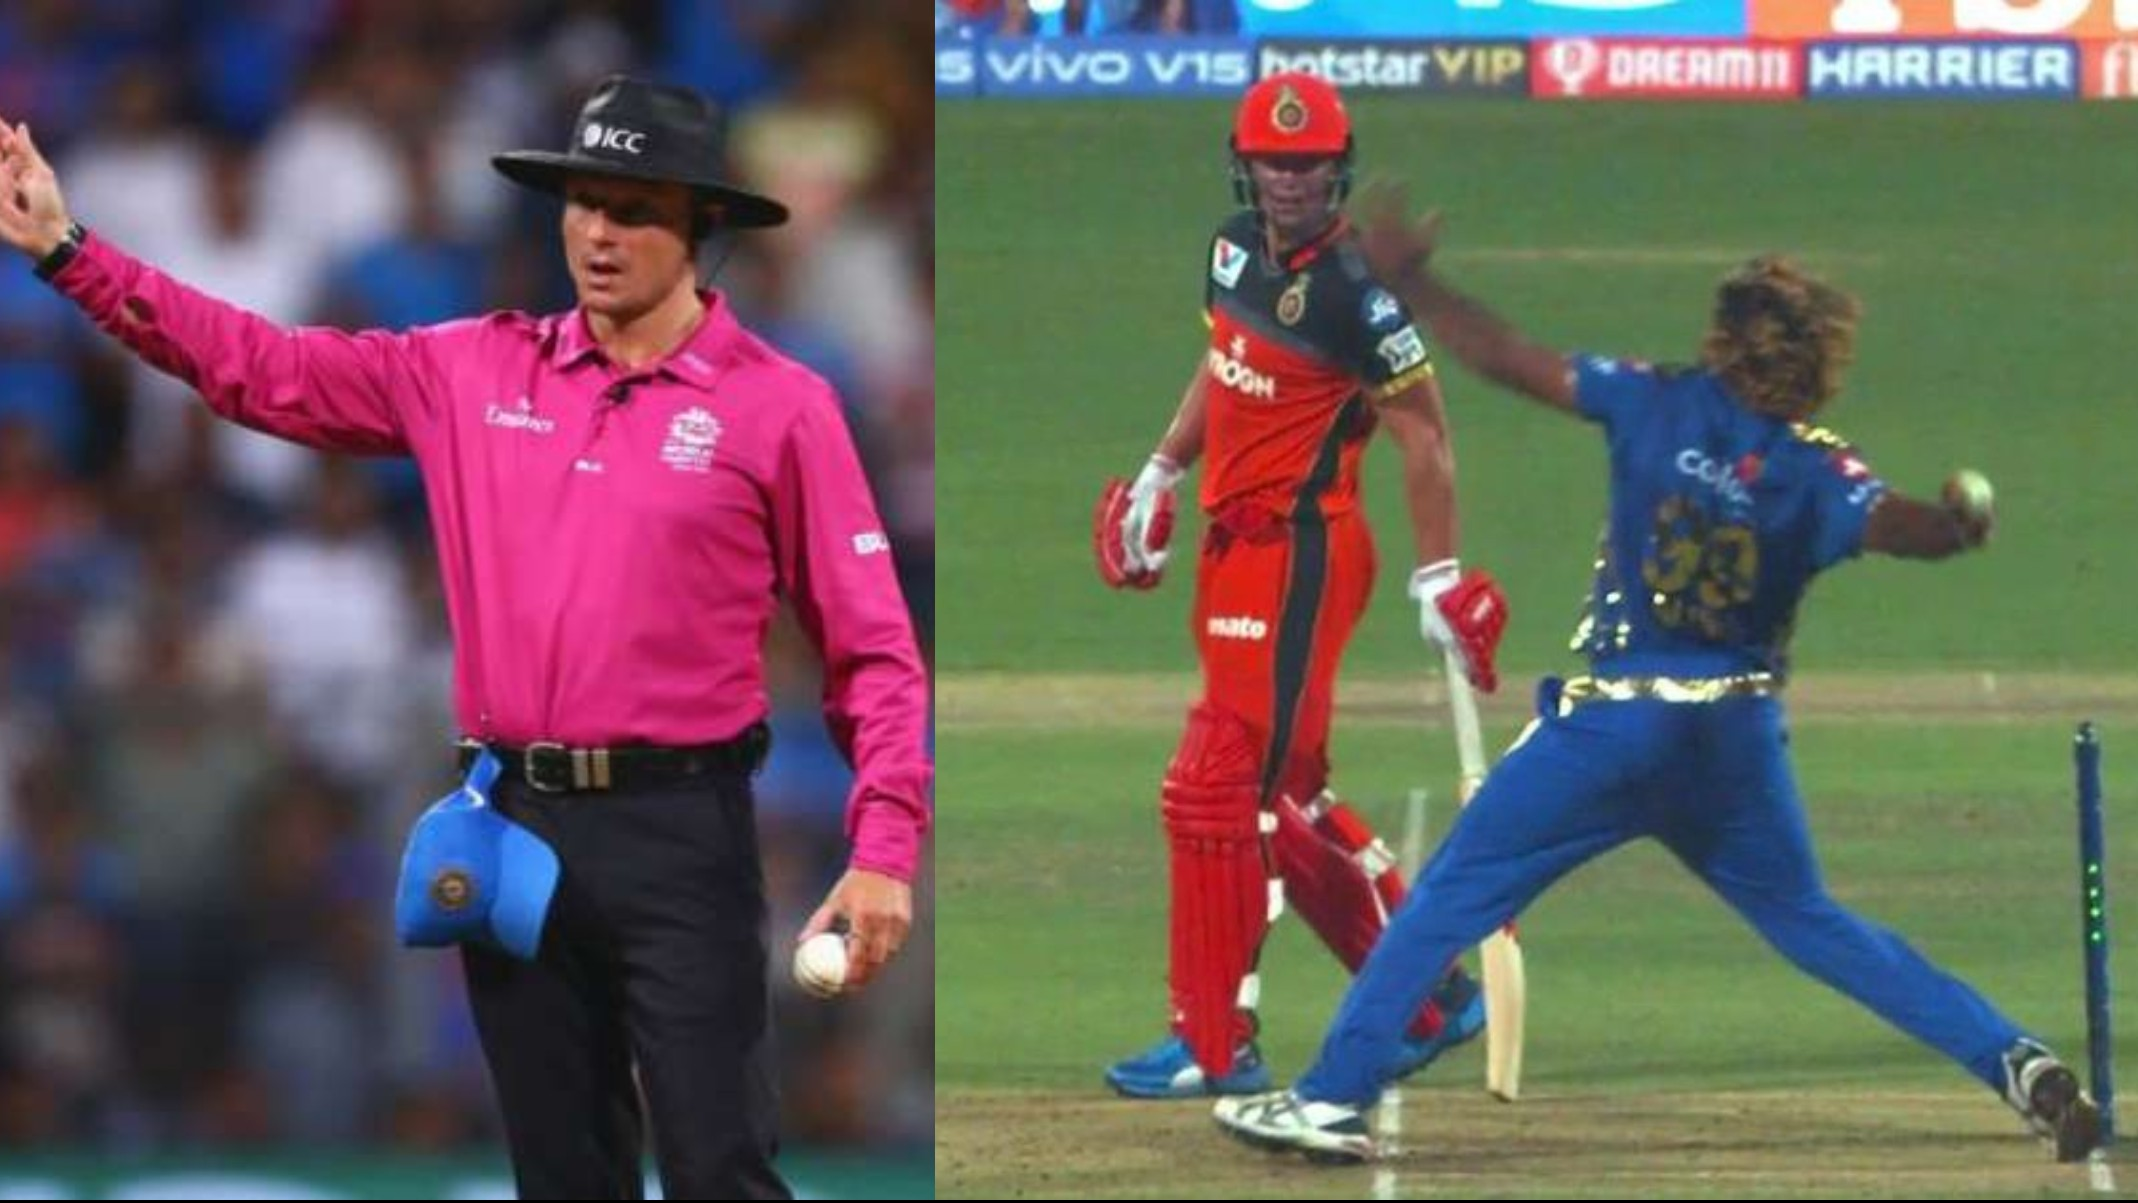 IPL 2020: BCCI to appoint a special umpire to monitor no-balls; auction on December 19 in Kolkata